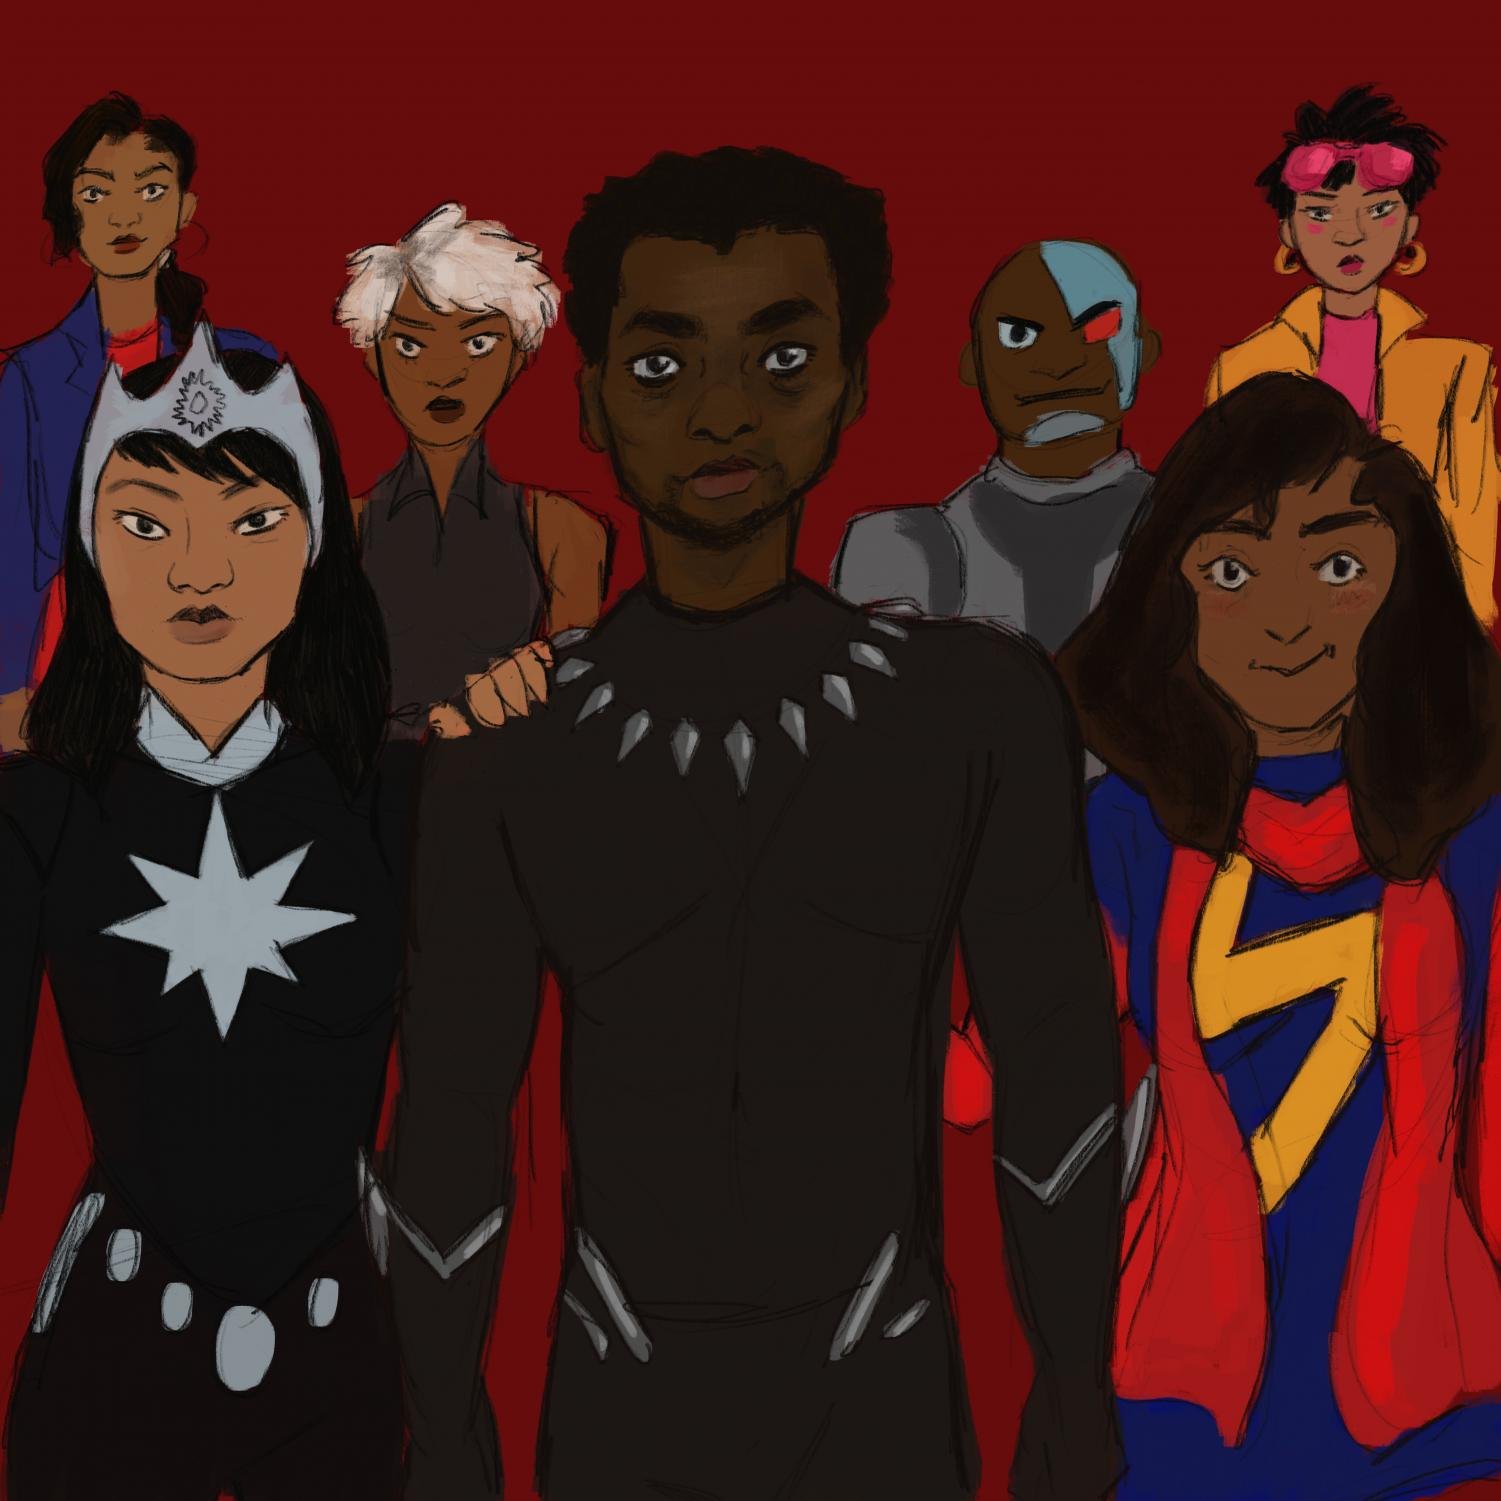 Hollywood is accepting the idea that minorities as superheros can make successful movies.